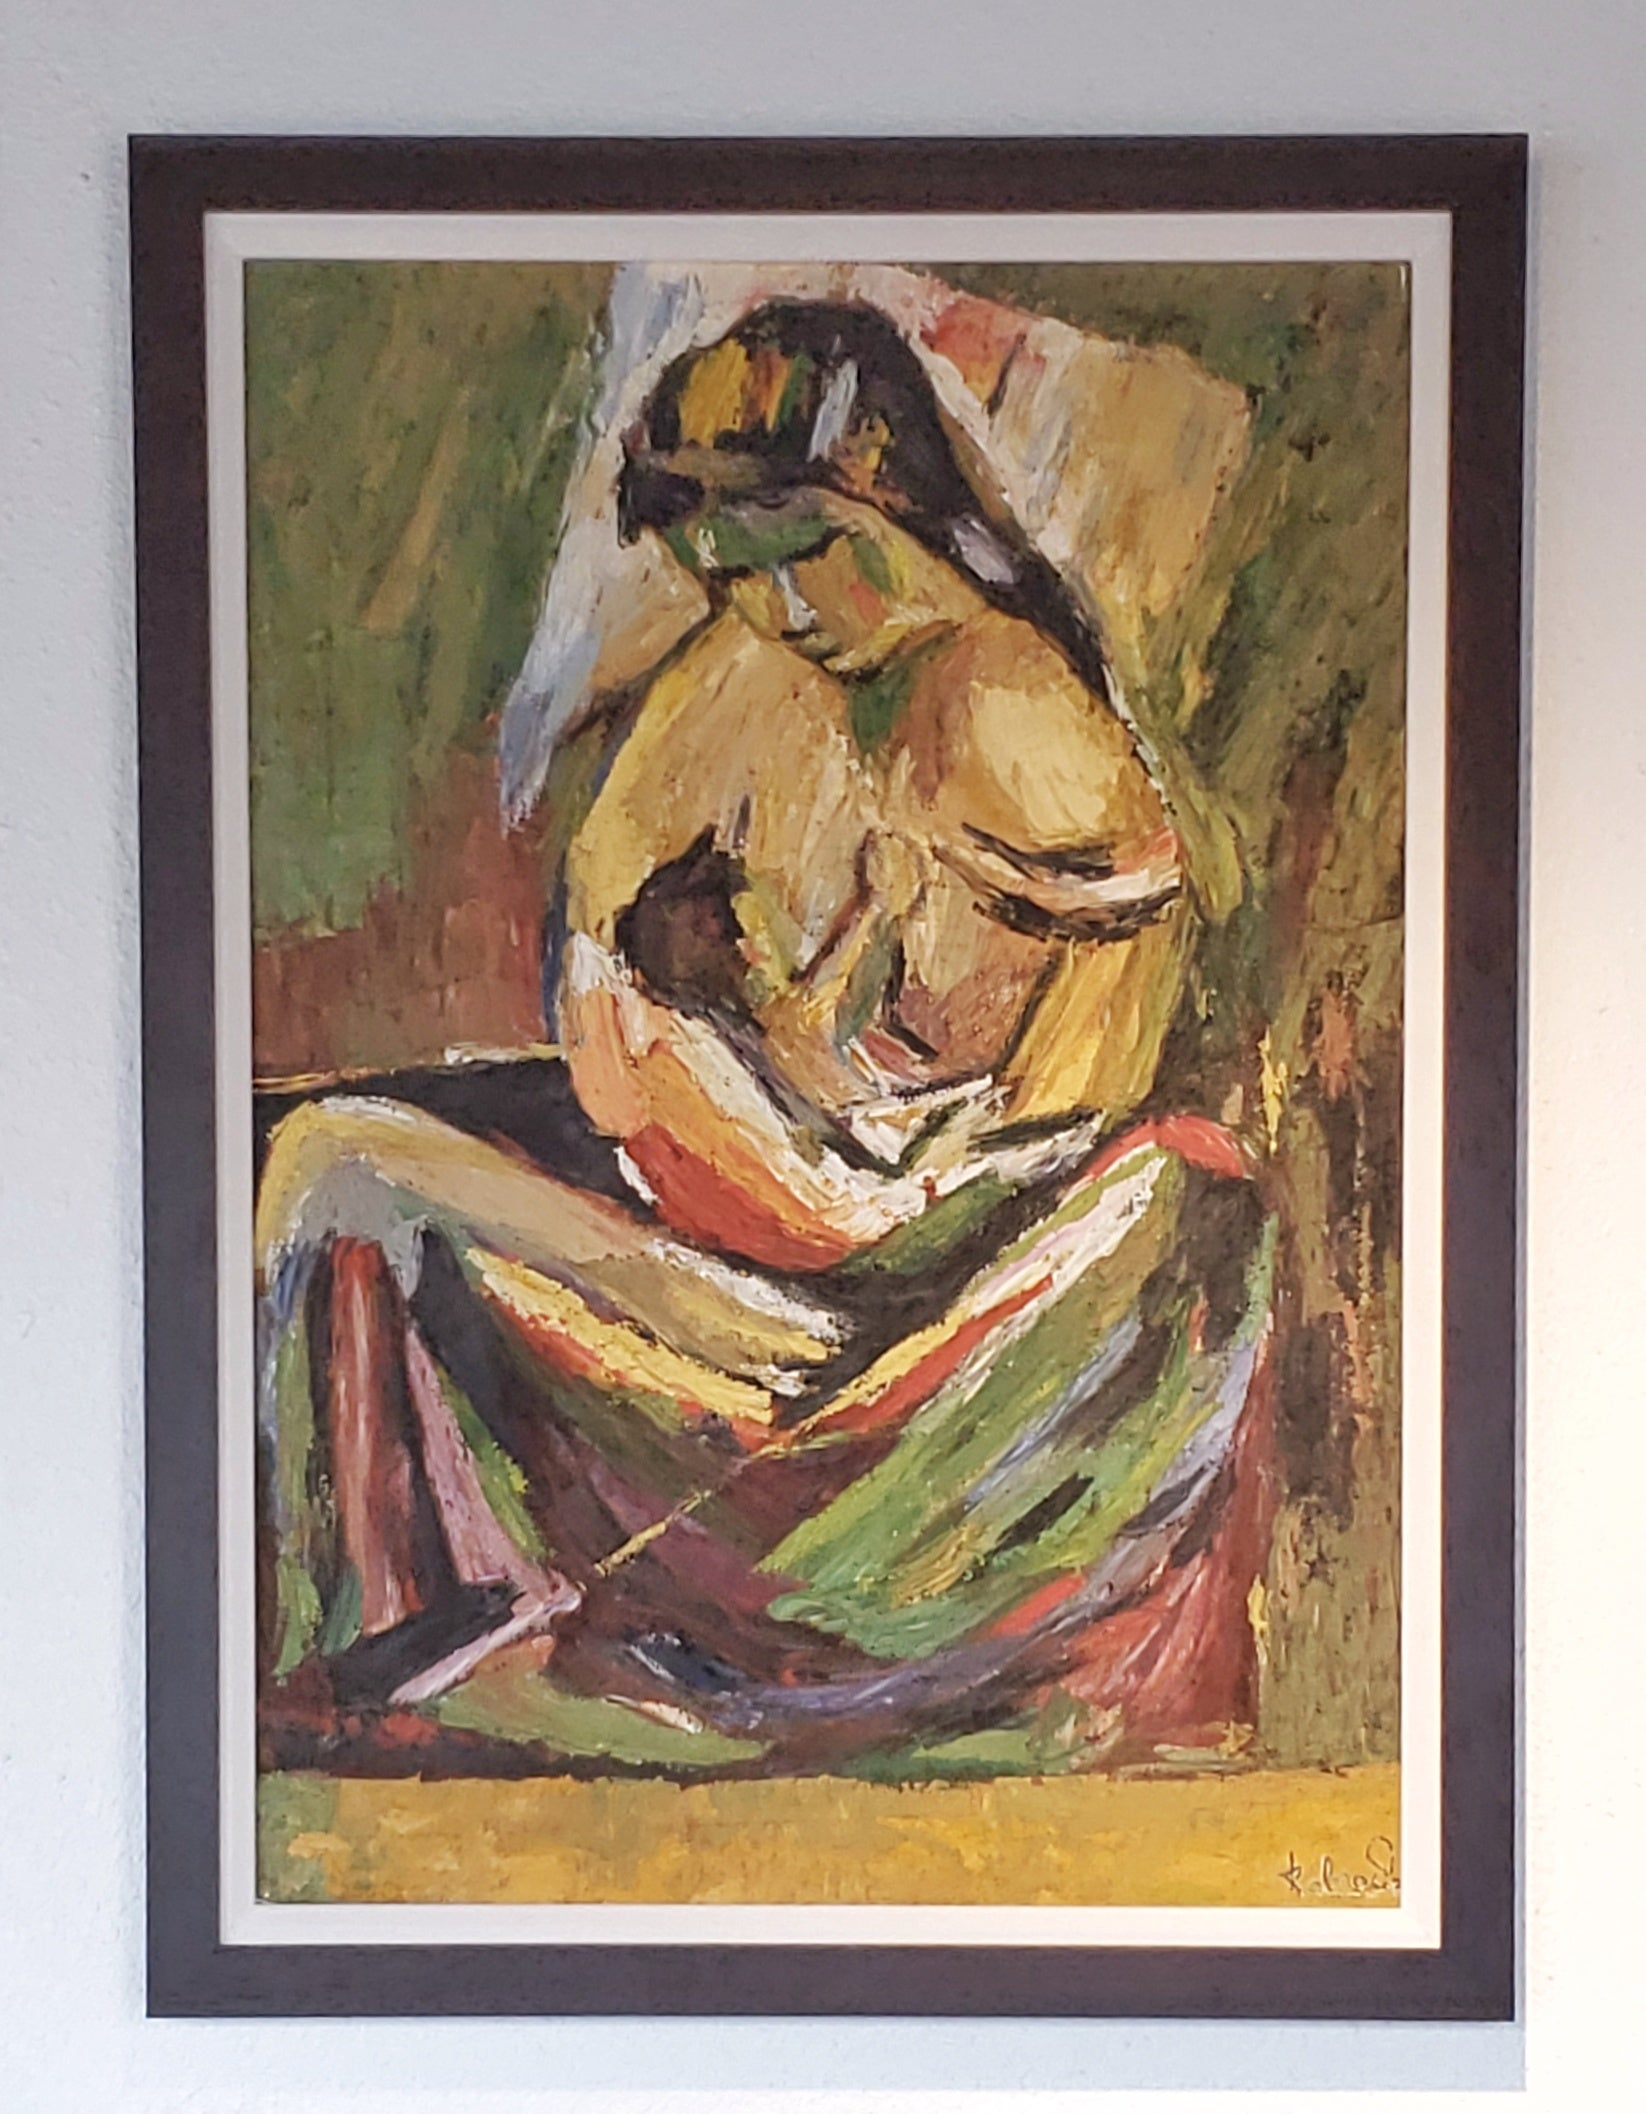 PORTRAIT OF A NURSING WOMAN AND CHILD (SIGNED)